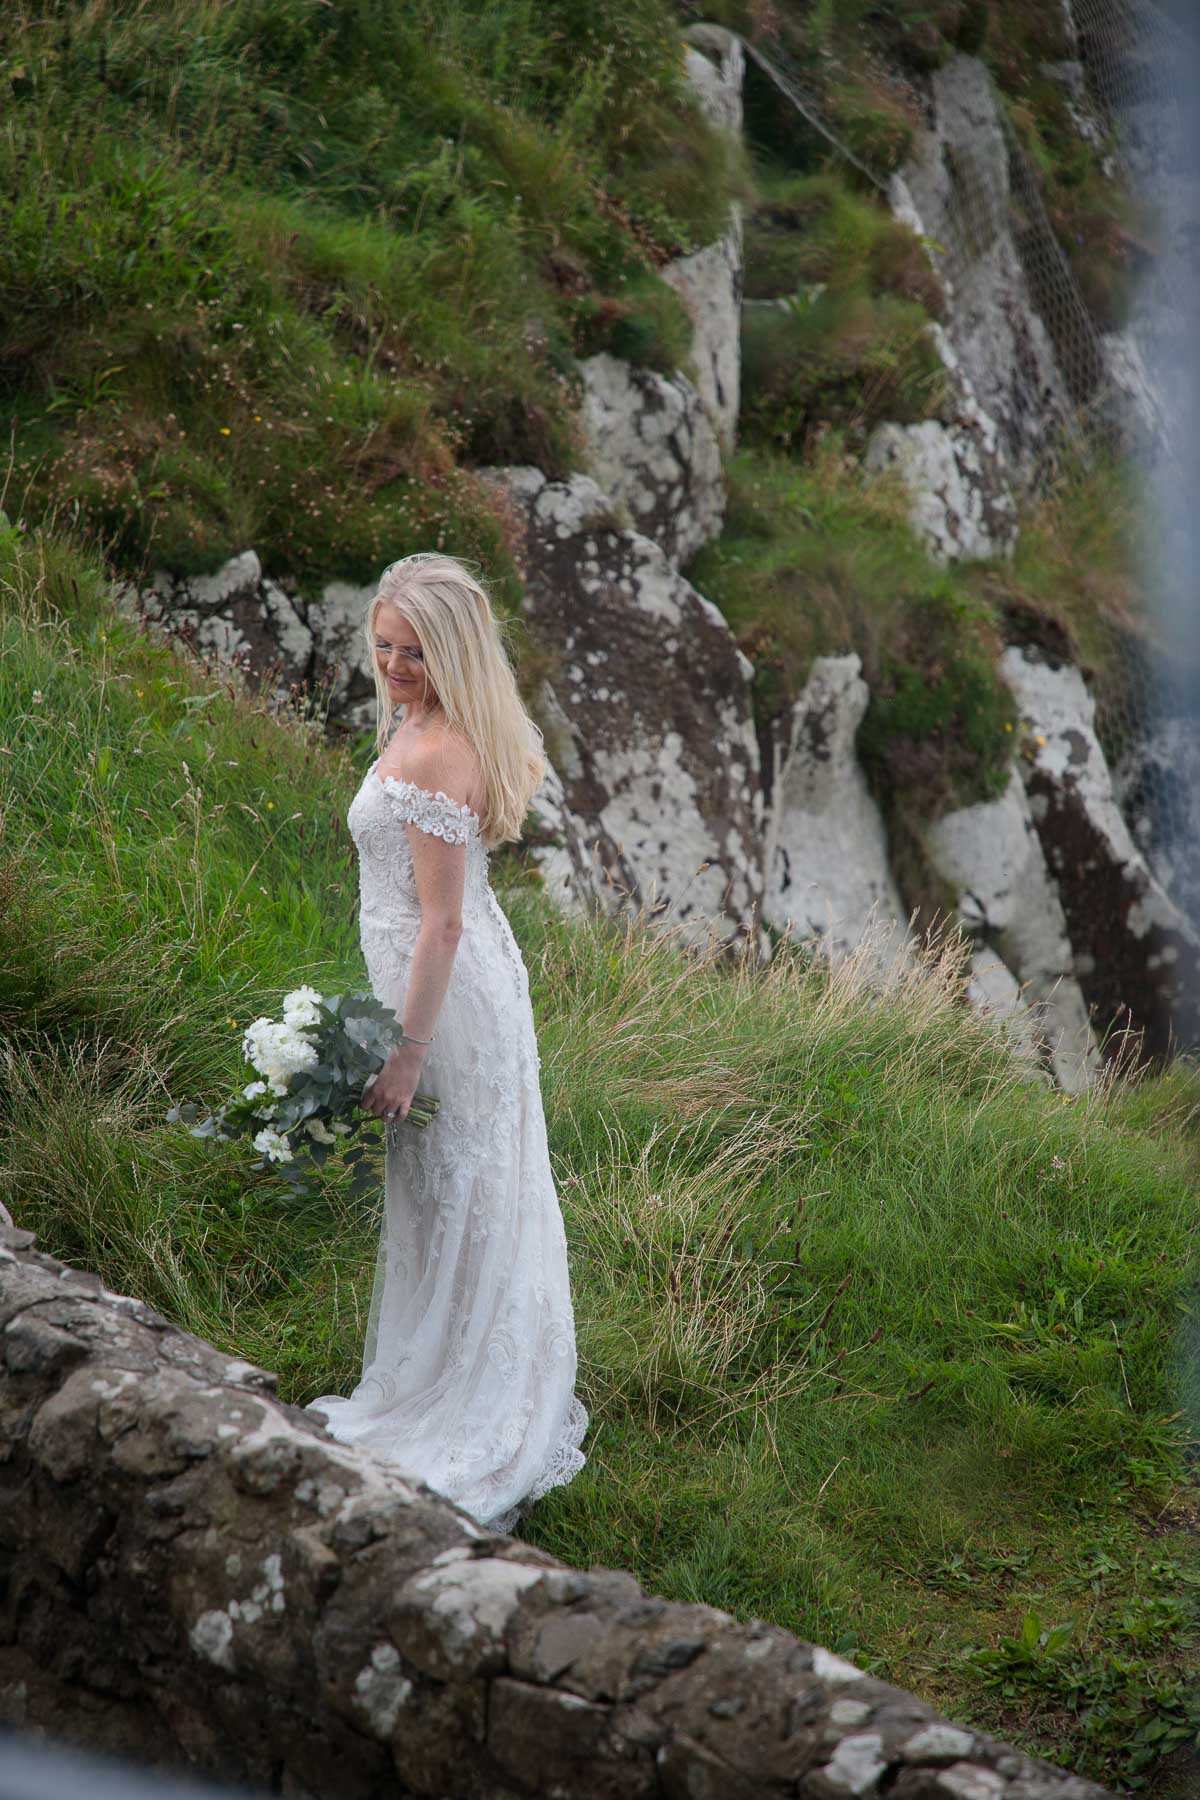 Photo of Kacey after her wedding at Temple Mussenden.